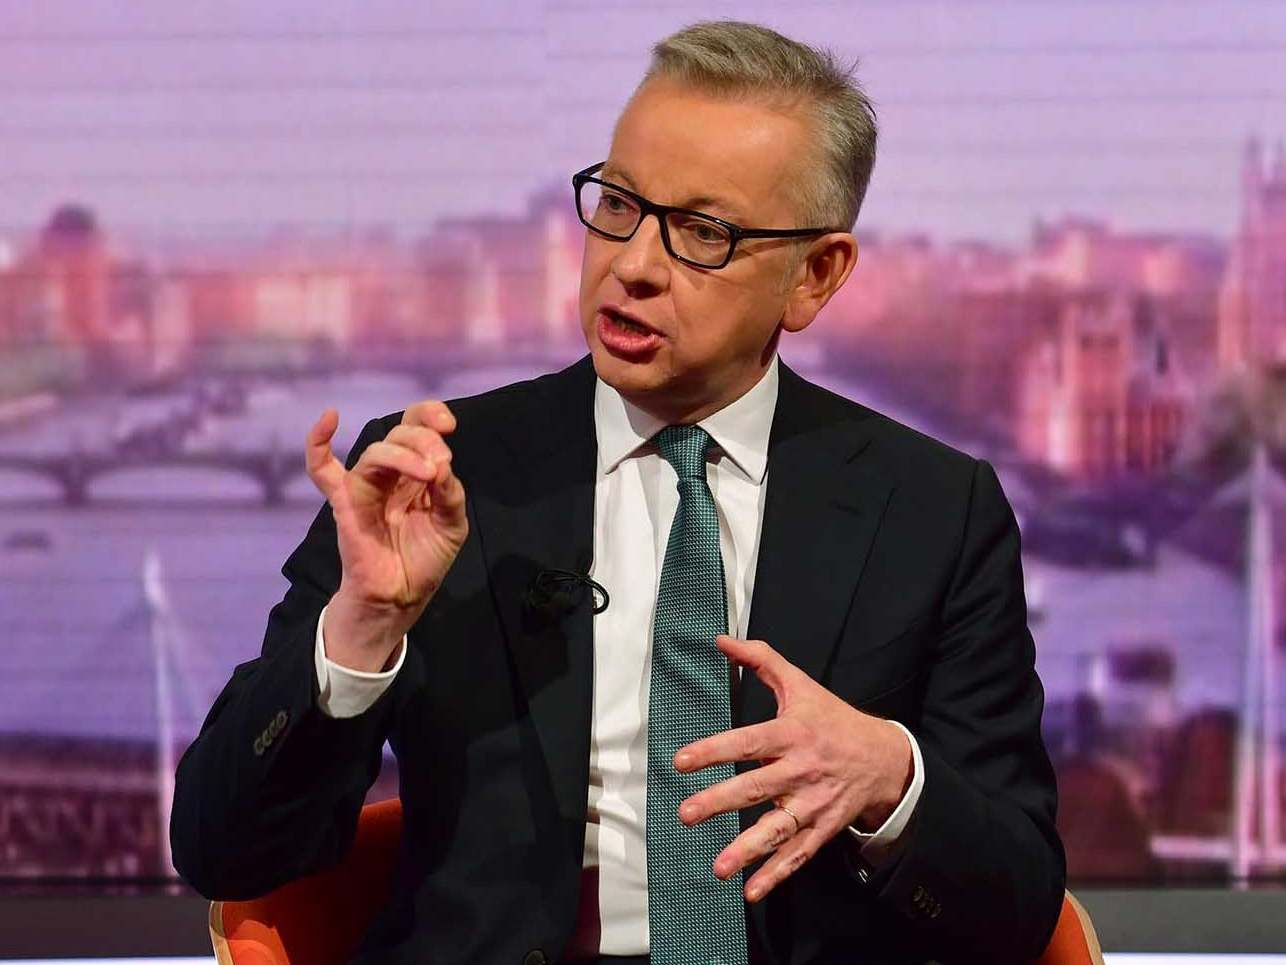 Michael Gove, try telling the struggling, unsupported families I work with that food price uncertainty is no big deal